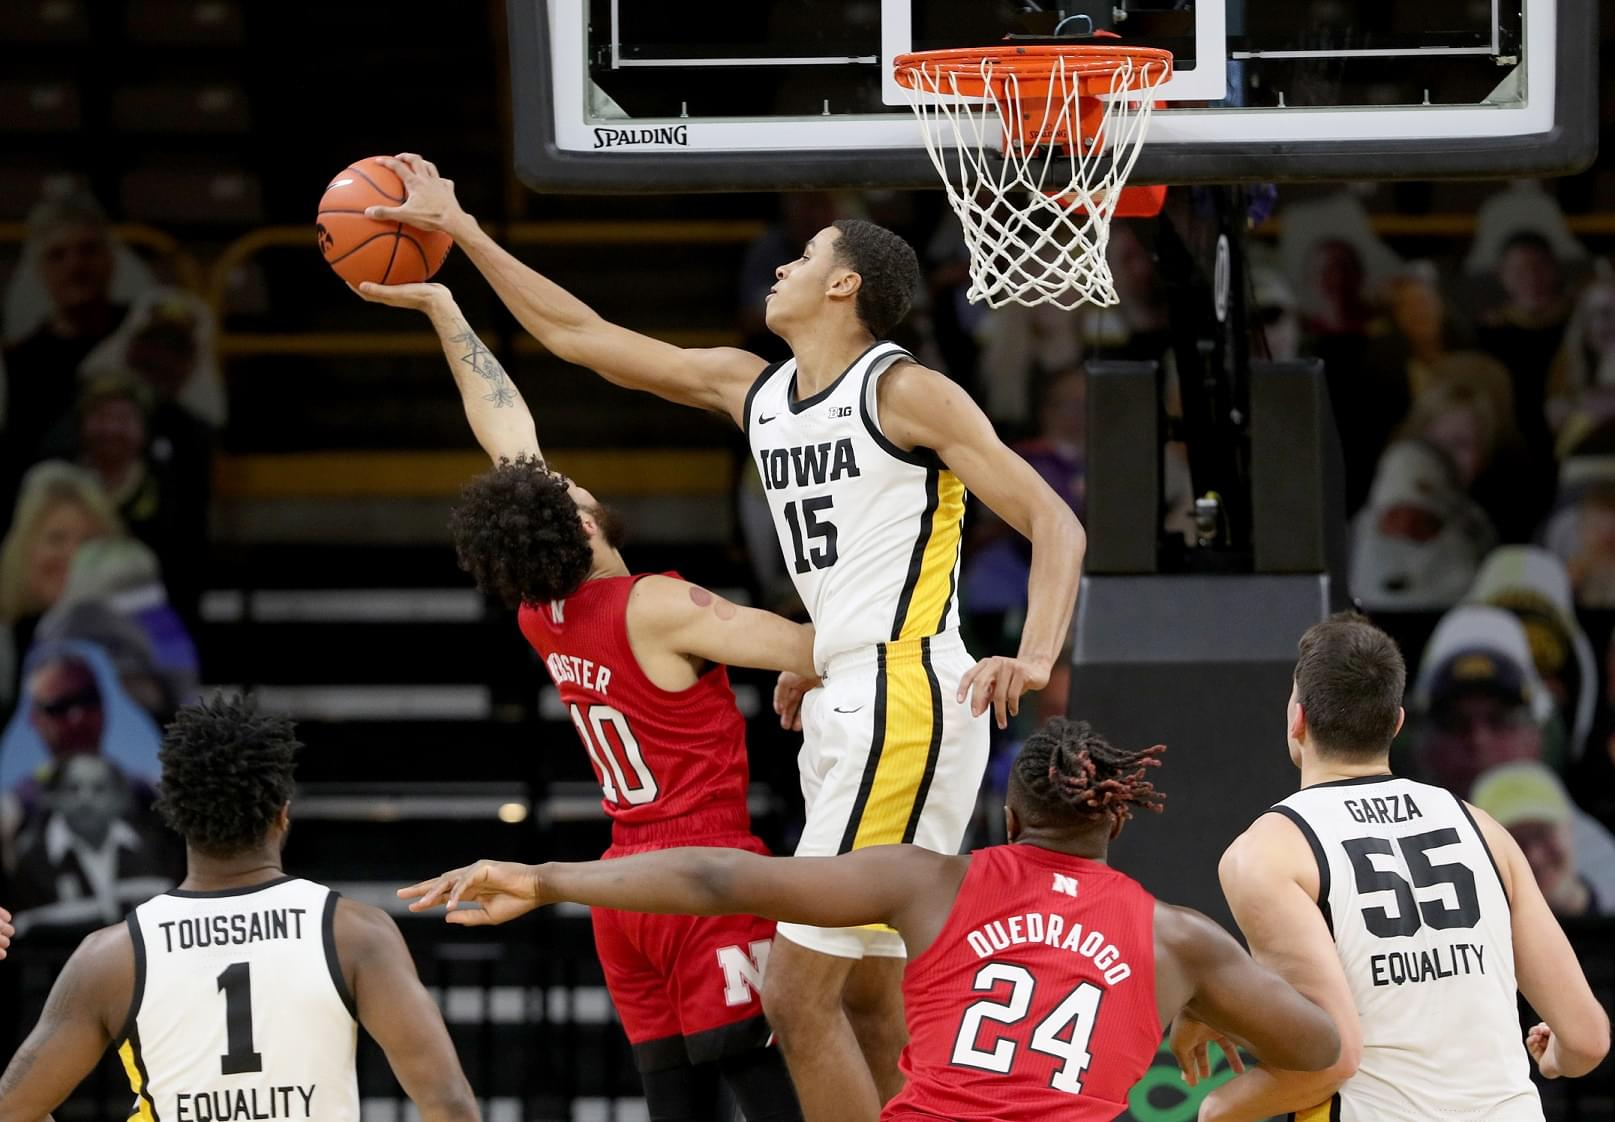 IOWA MENS BASKETBALL VS NEBRASKA